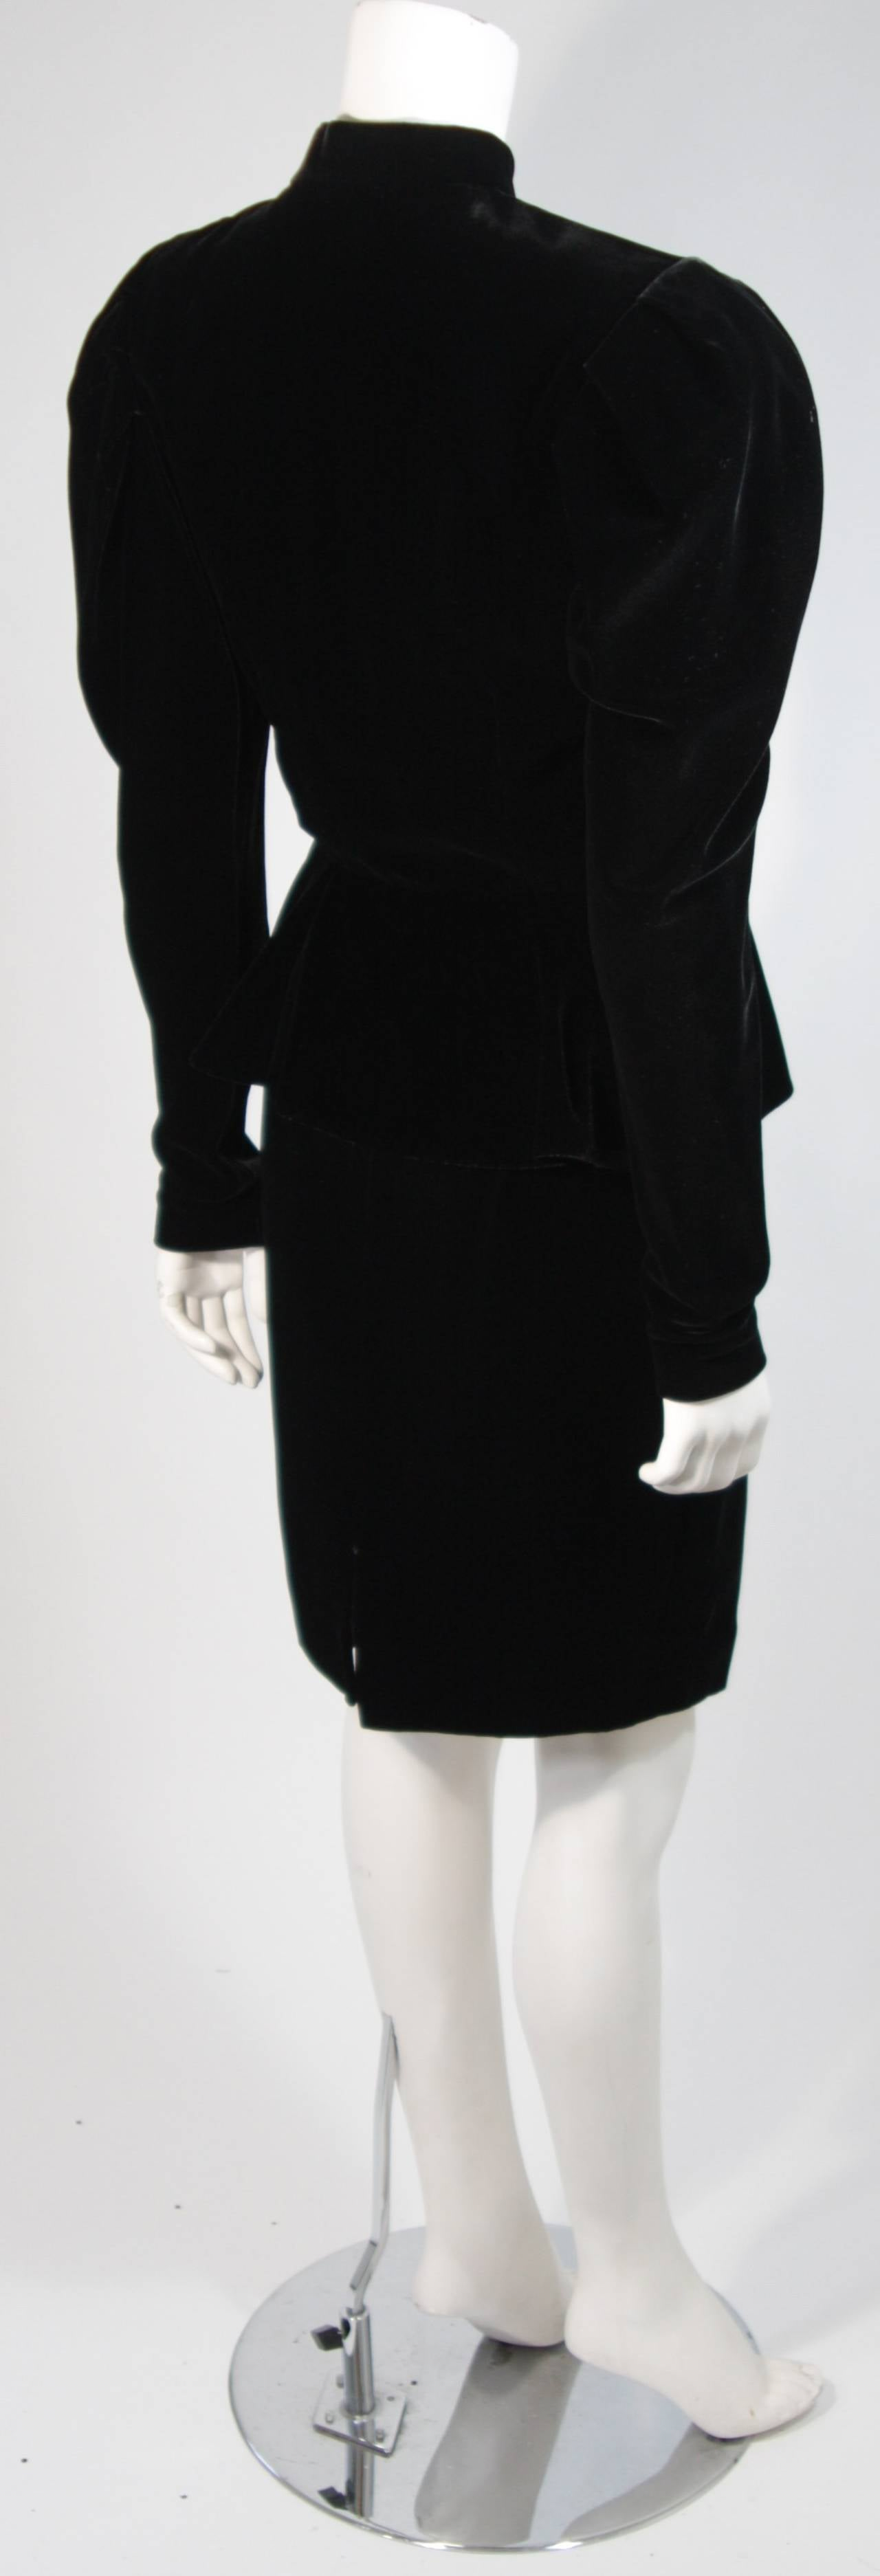 Vicky Tiel Black Velvet Skirt Suit with Rhinestone Buttons Size Small For Sale 1